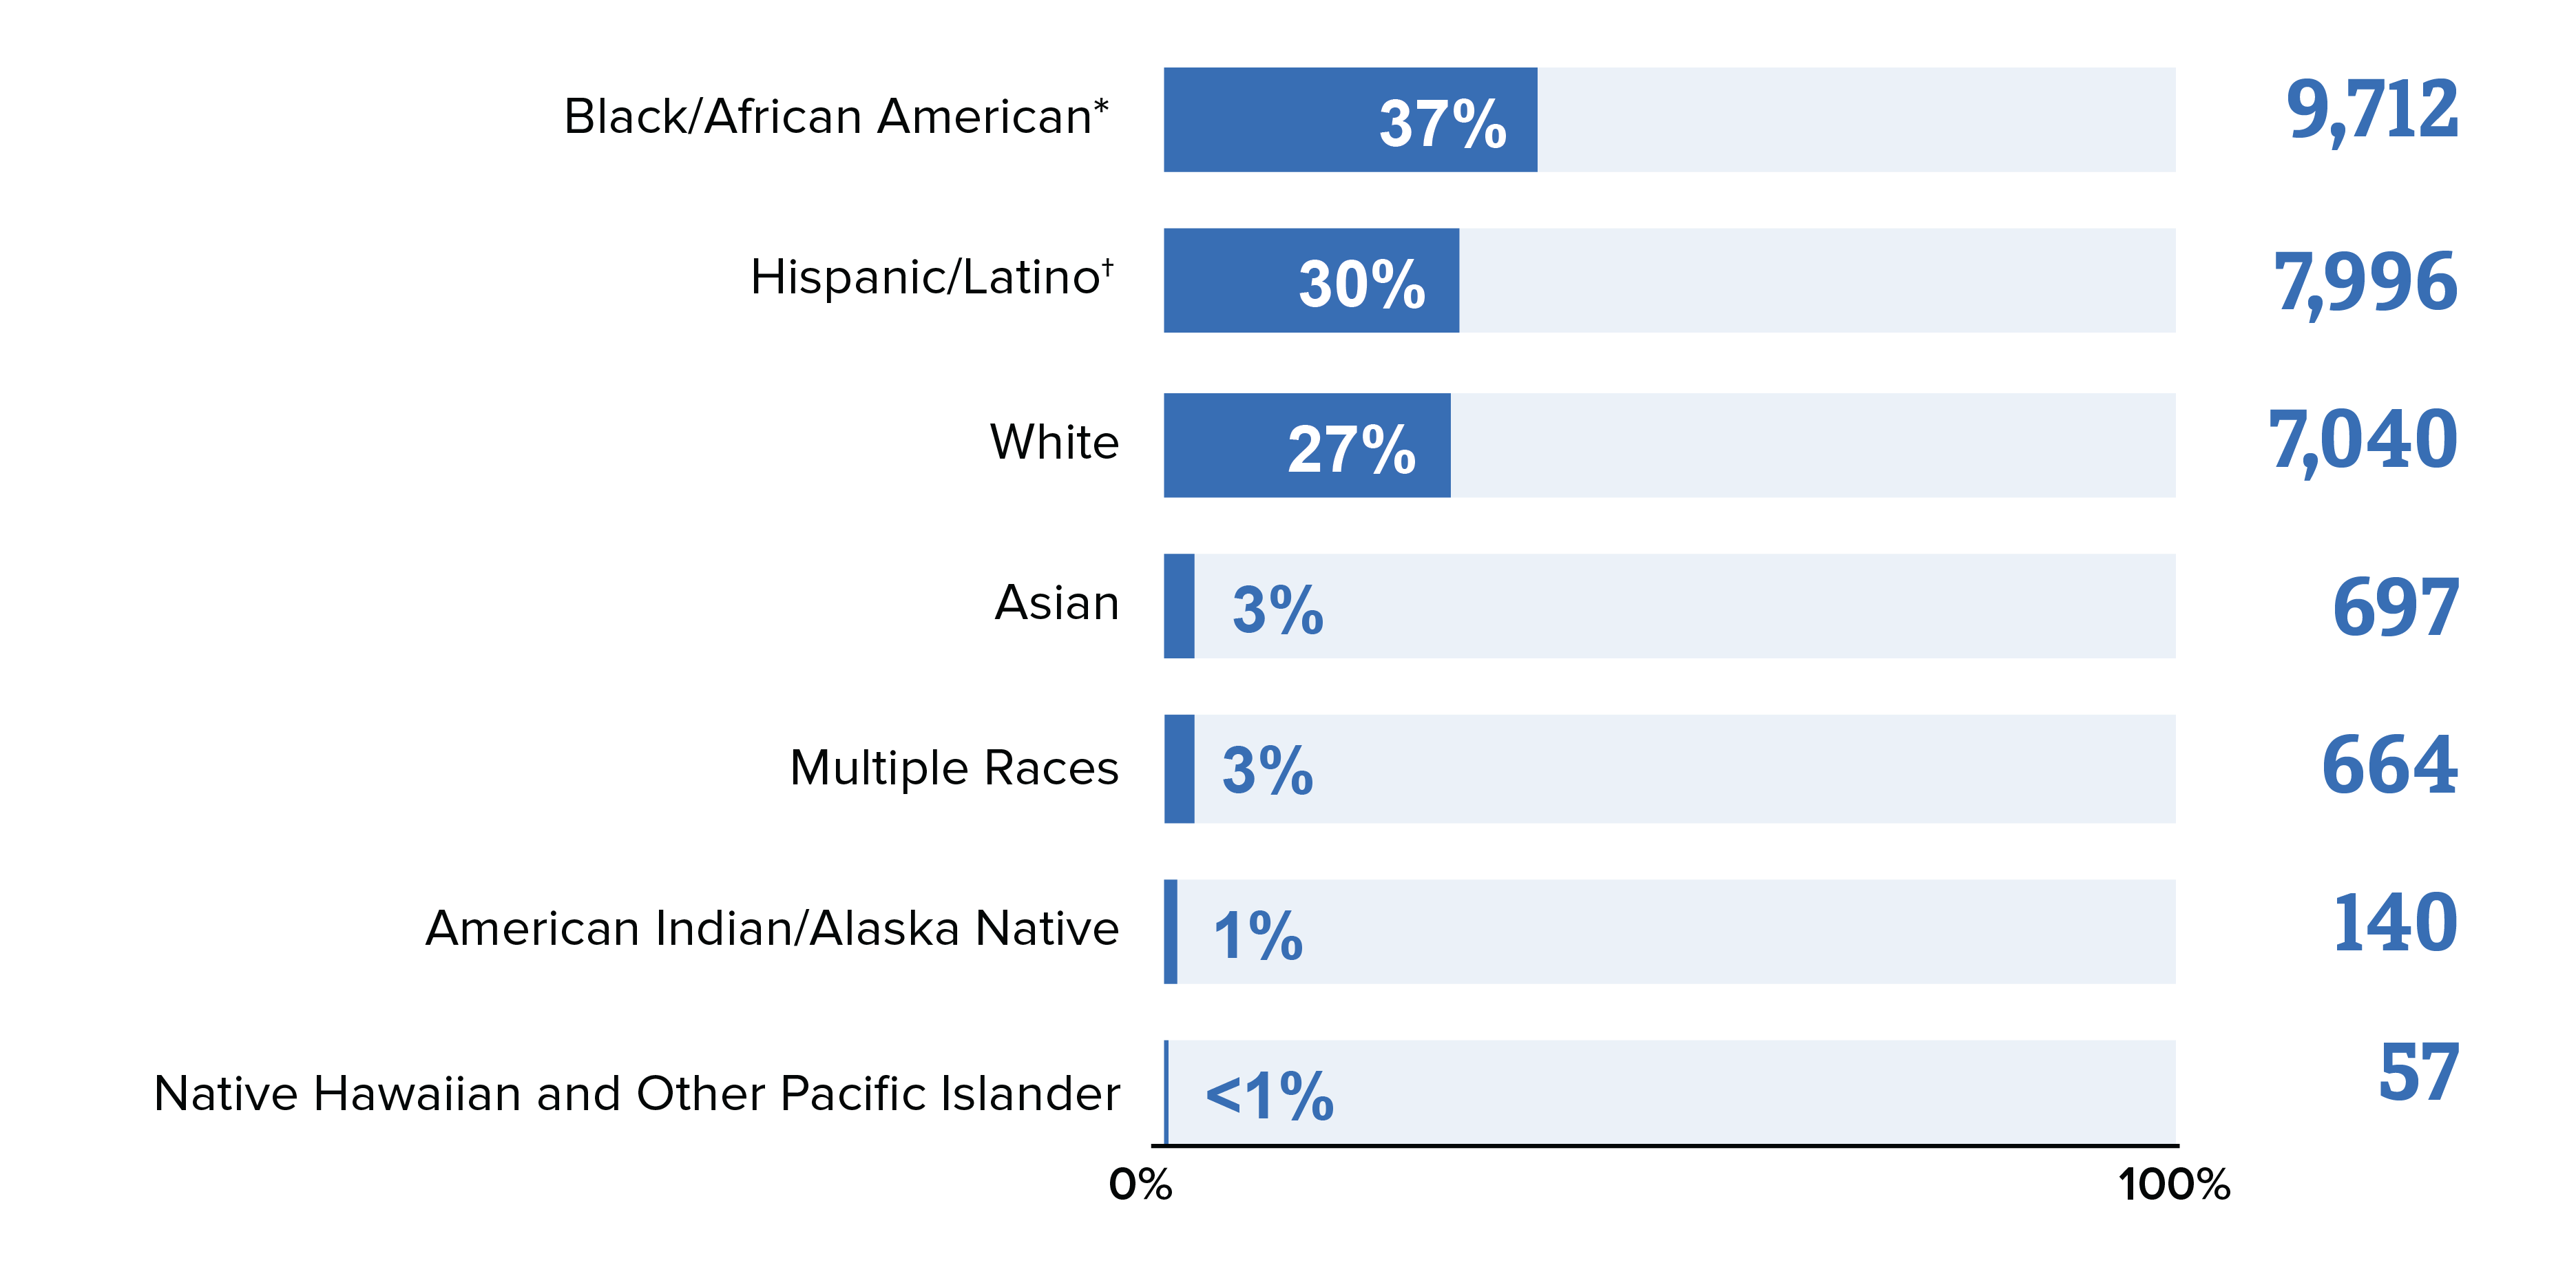 This bar chart shows HIV diagnoses among gay and bisexual men in the United States and dependent areas in 2018 by race. Black/African American gay and bisexual men made up 37% of new HIV diagnoses, Hispanic/Latino gay and bisexual men made up 30%, white gay and bisexual men made up 27%, Asian gay and bisexual men made up 3%, gay and bisexual men of multiple races made up 3%, American Indian/Alaska Native gay and bisexual men made up 1% and Native Hawaiian and Other Pacific Islander gay and bisexual men made up less than 1% of new HIV diagnoses.